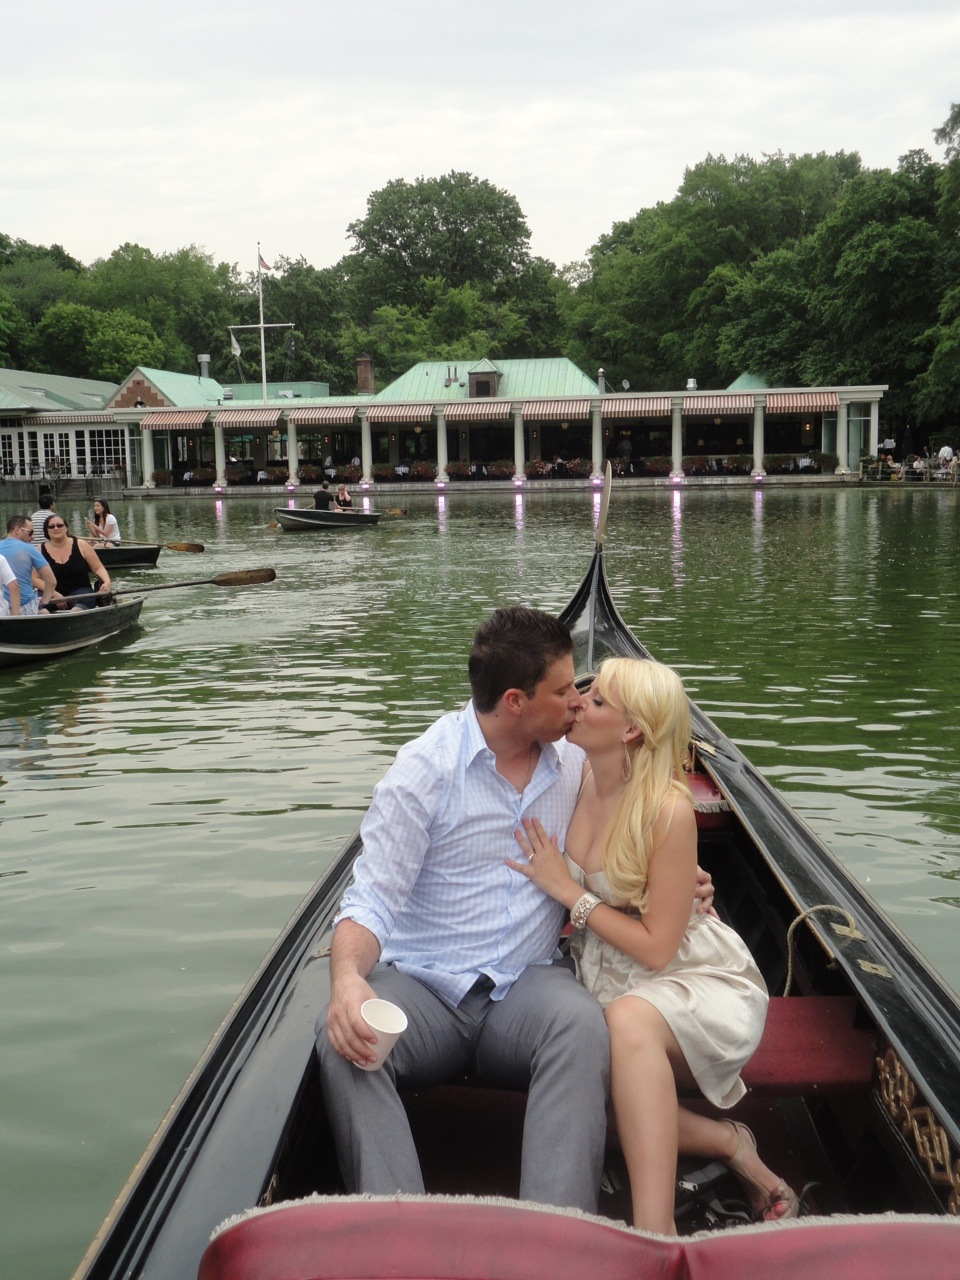 Rebecca Coles & Andrew Gullixson - Engagement at the Boathouse in Central Park.